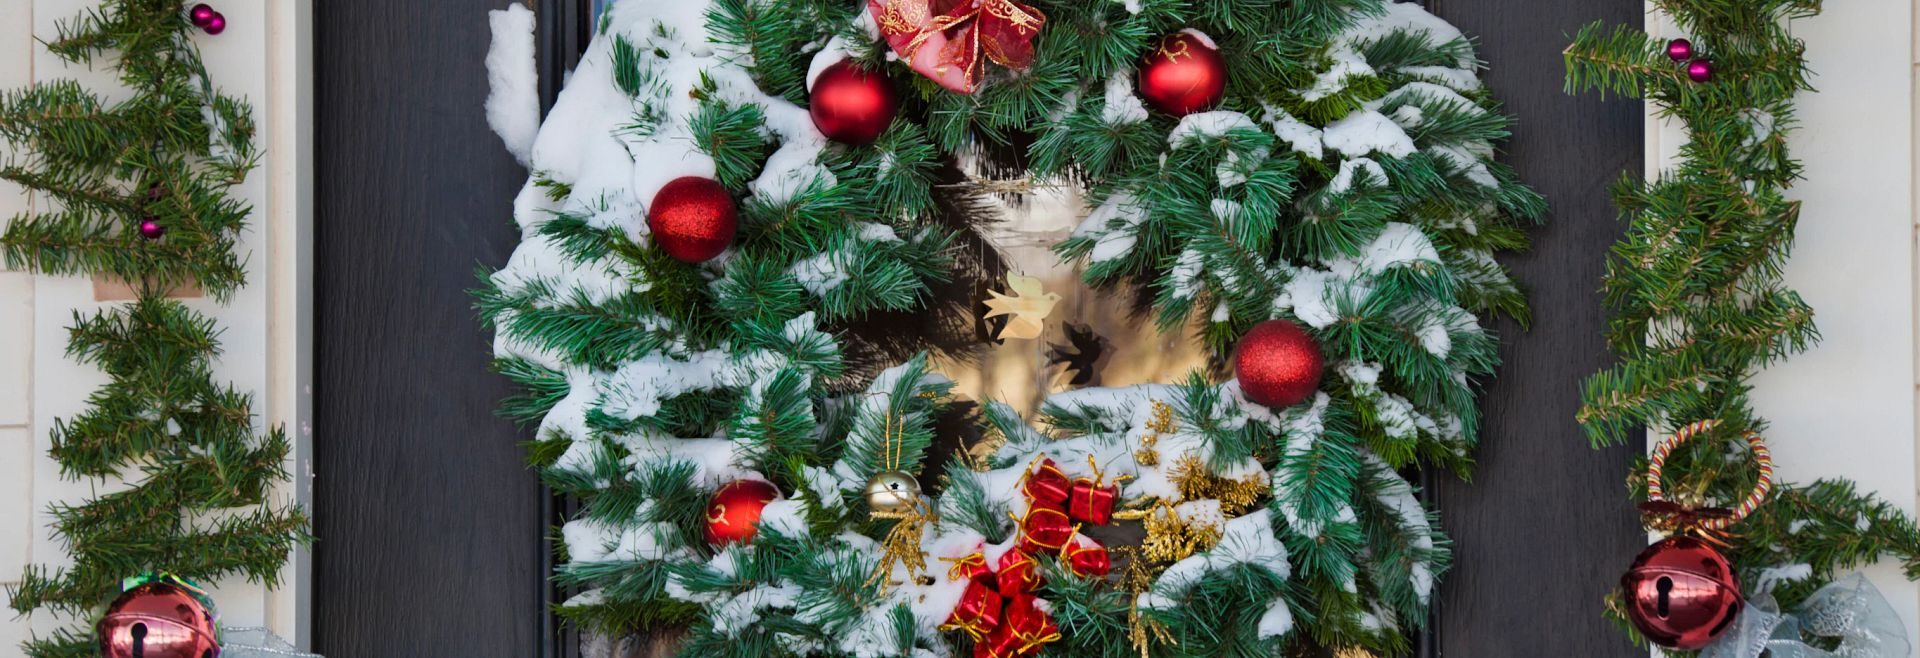 Holiday Christmas Wreath Garland Bells Front Door Decorations Getty Images